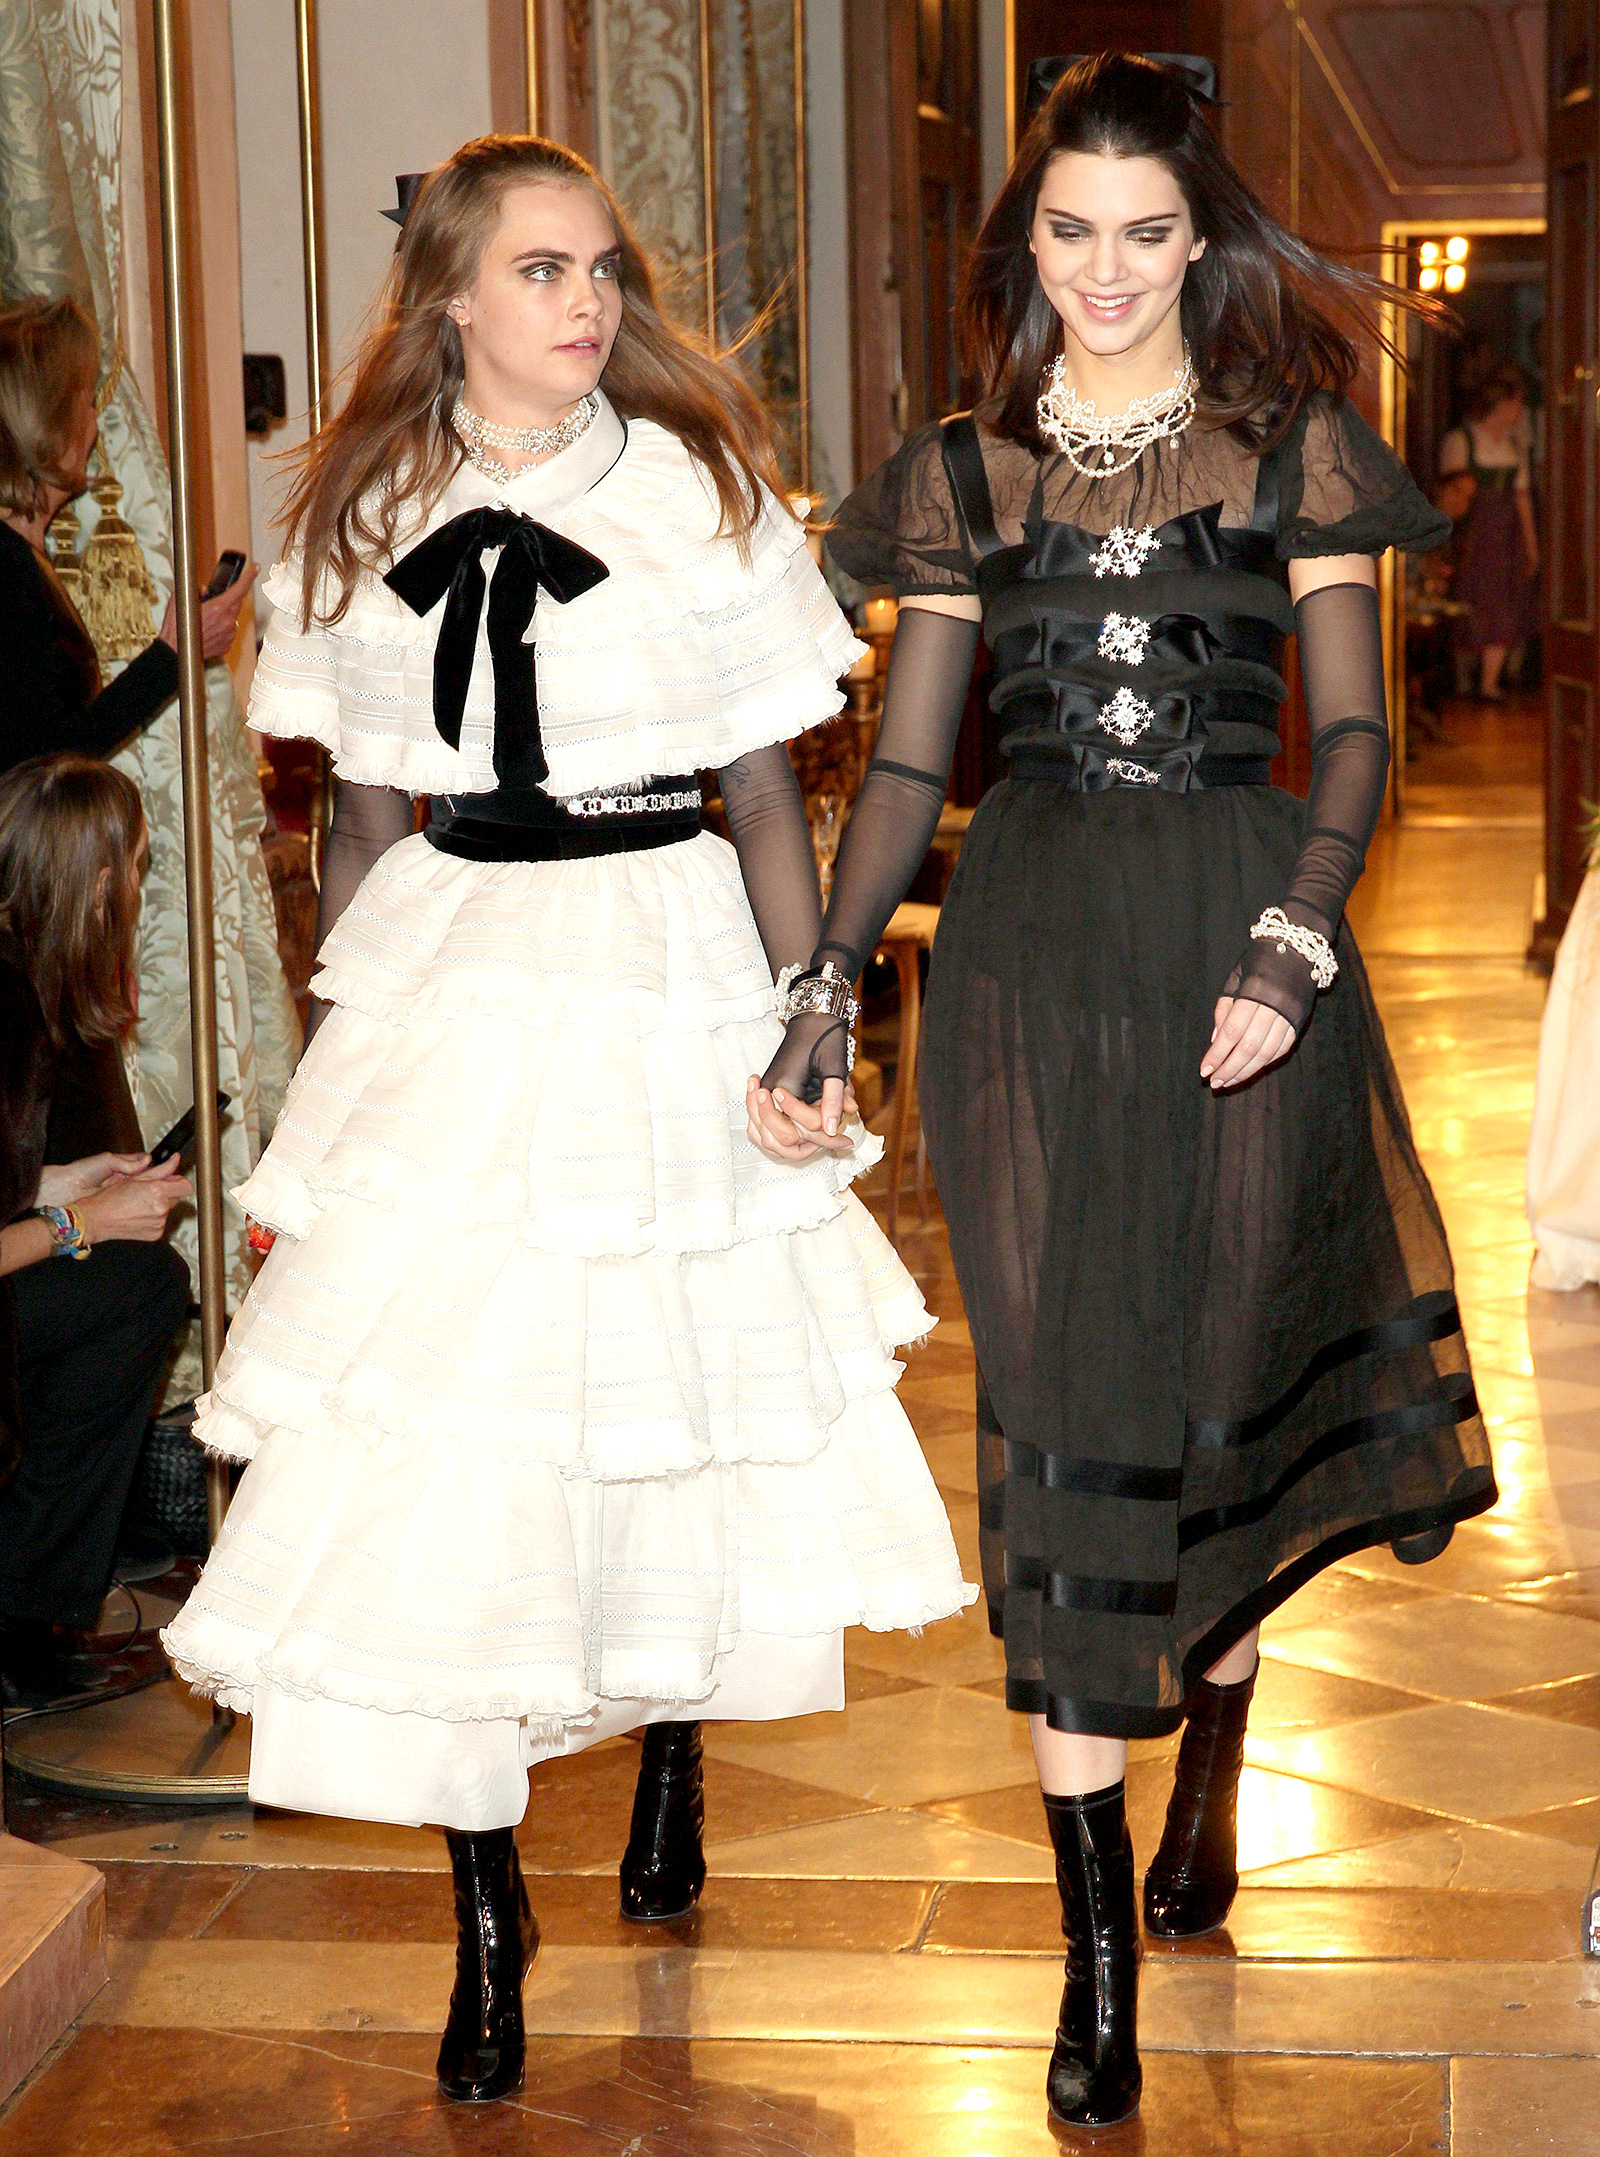 Kendall Jenner and Cara Delevigne walking in the Chanel runway show.